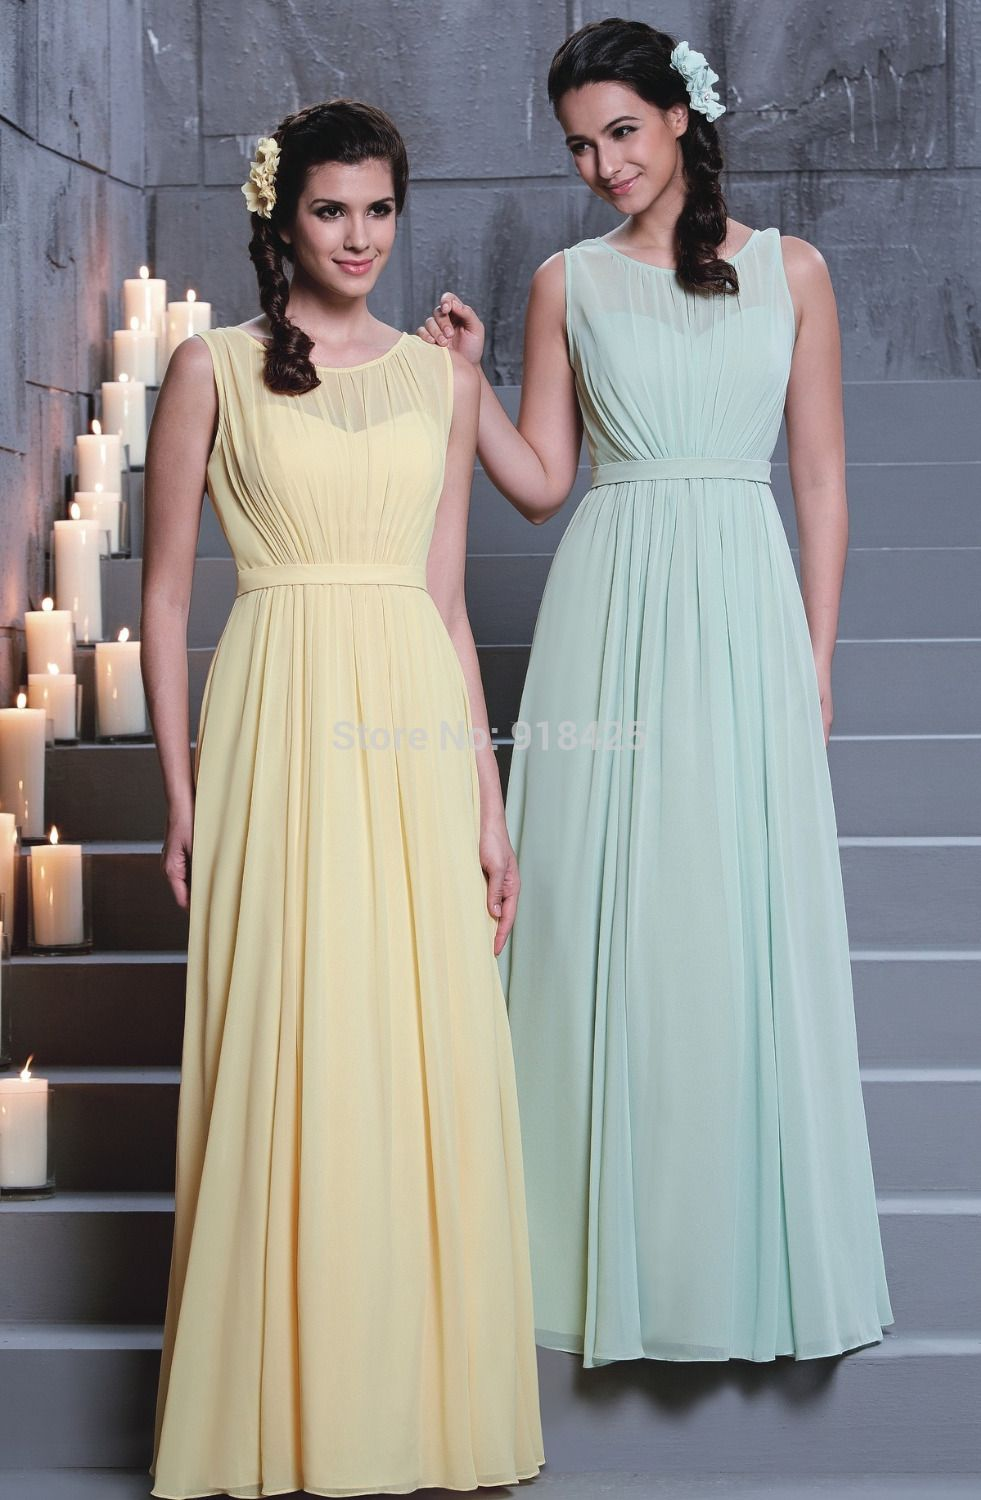 New arrival illusion neck chiffon long yellowmint green new arrival illusion neck chiffon long yellowmint green bridesmaid dresses elegant sleeveless for wedding ombrellifo Choice Image